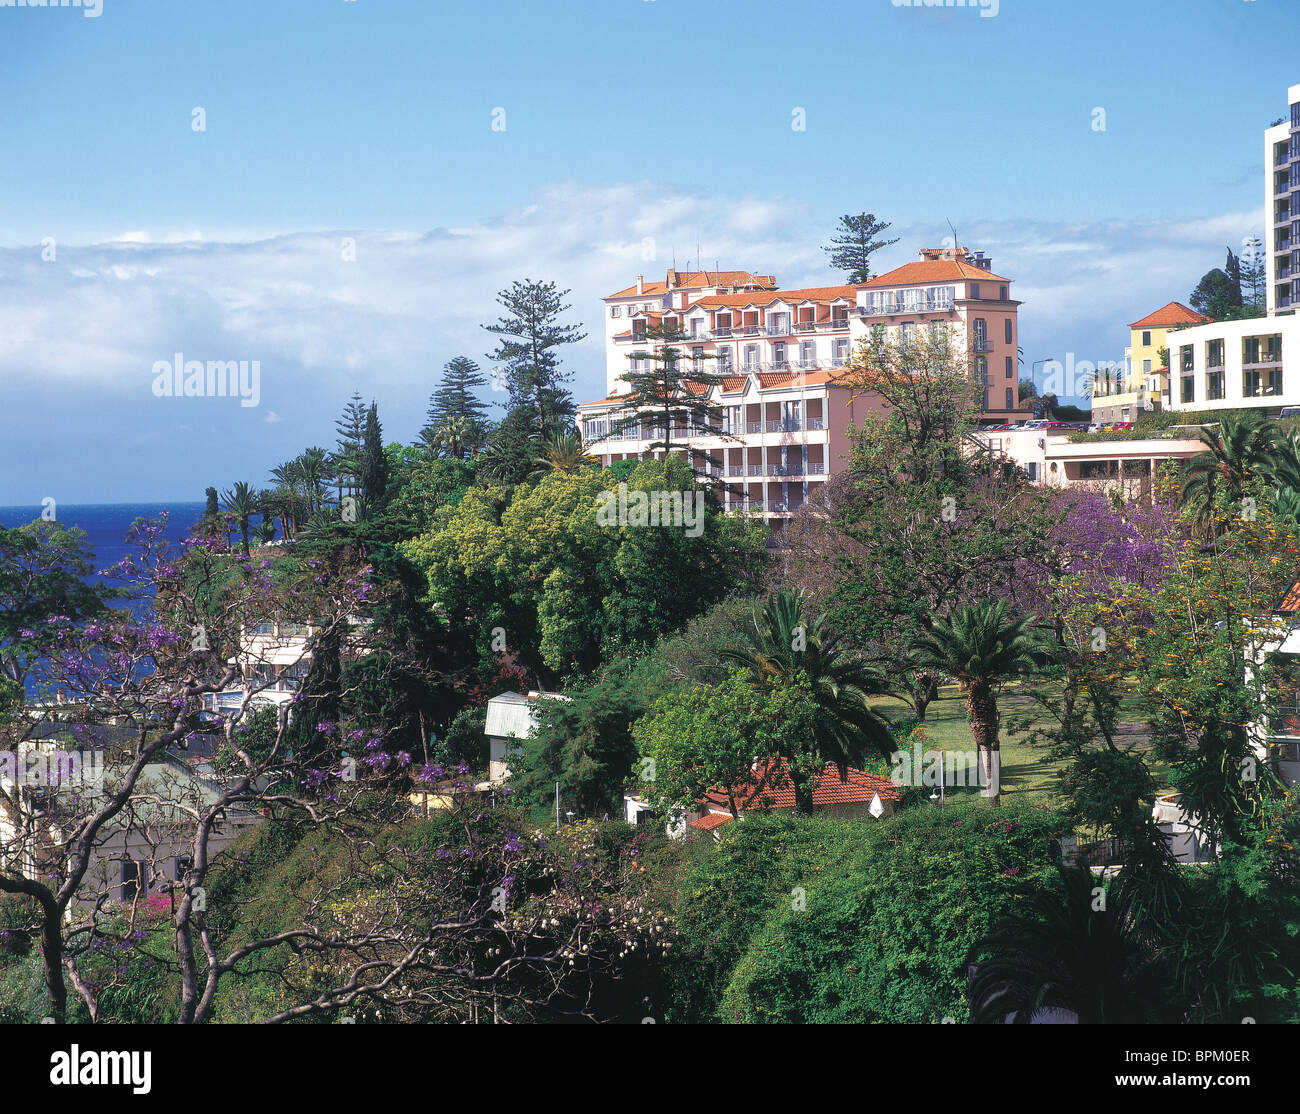 reid 39 s palace hotel funchal madeira stock photo royalty free image 31172255 alamy. Black Bedroom Furniture Sets. Home Design Ideas